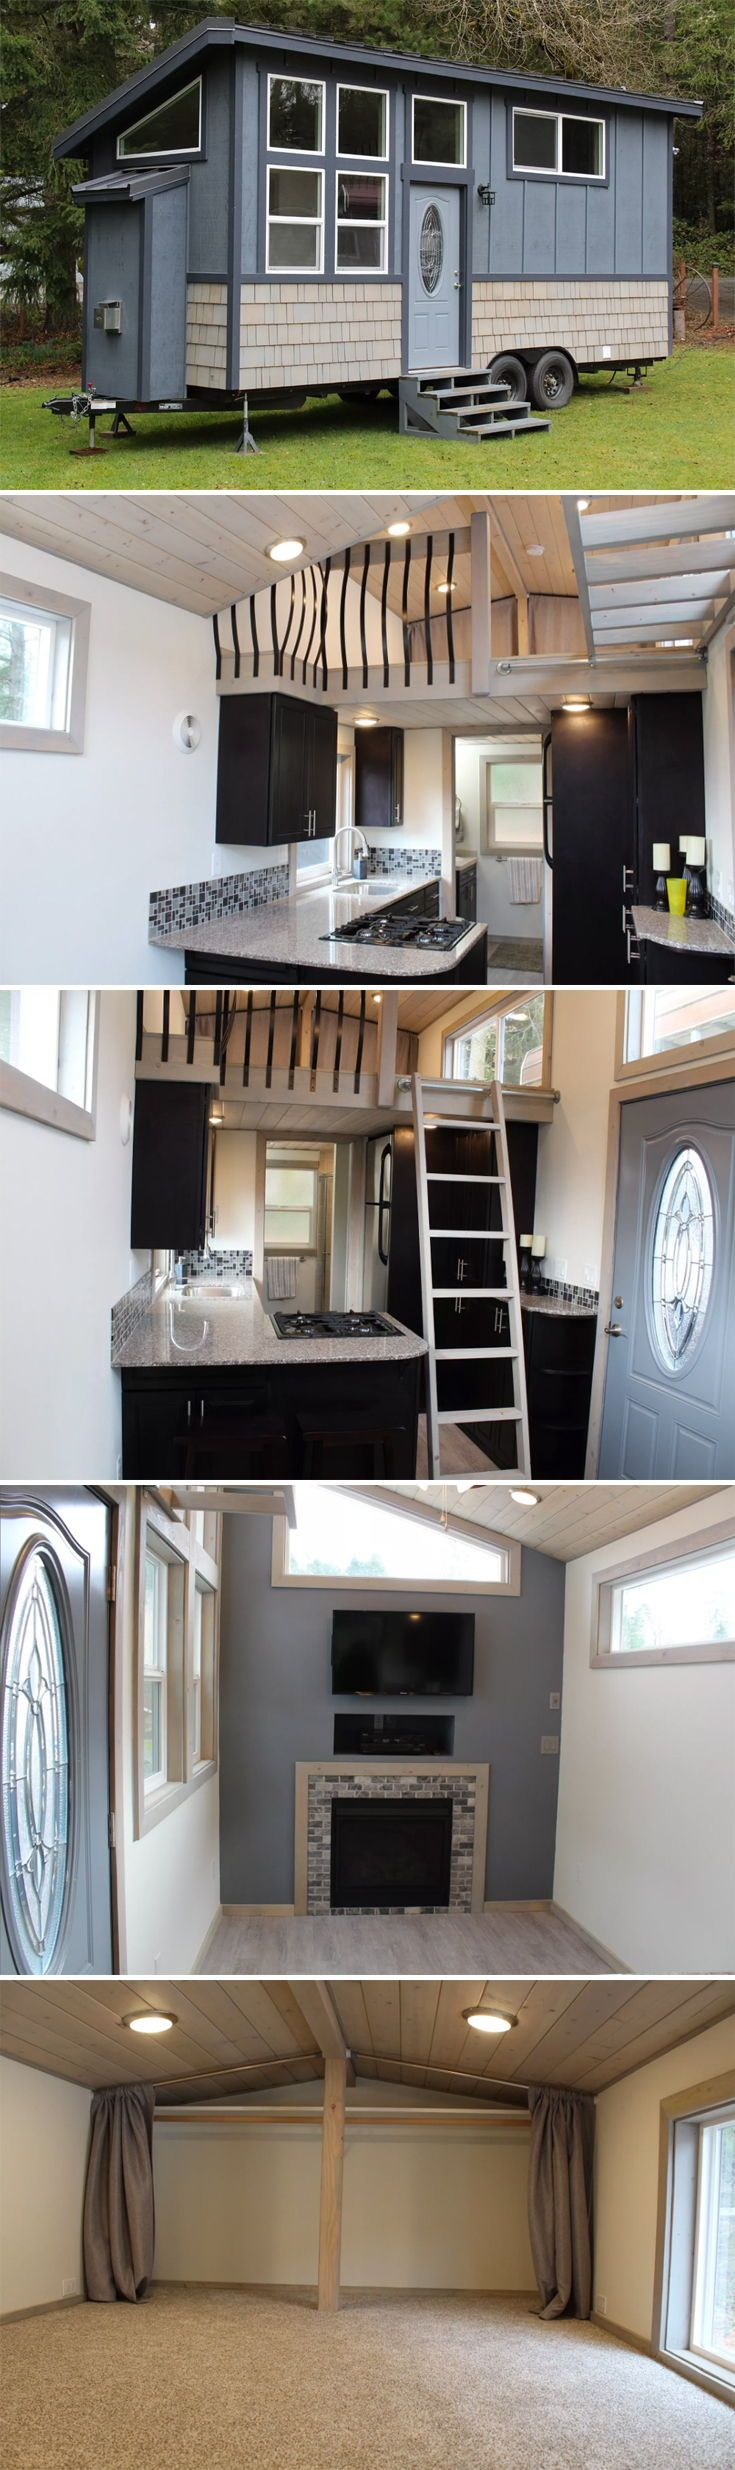 1 bedroom with loft for rent  Kingus Loft by Tiny Houses of Washington  Tiny Houses  Pinterest